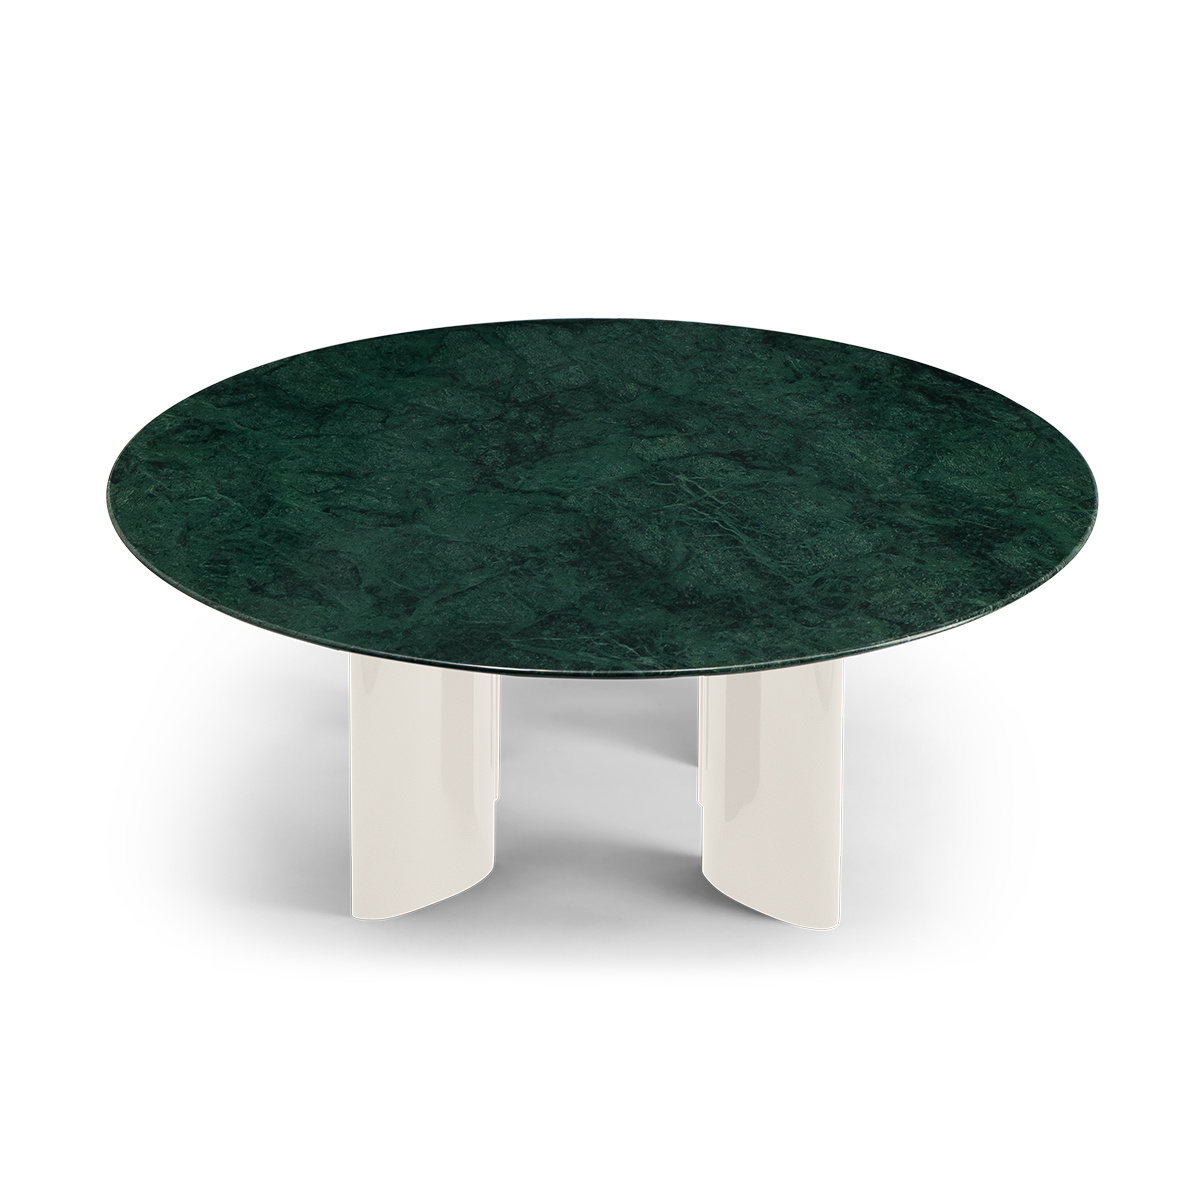 Carlotta coffee table, green marble top and cream white lacquered legs